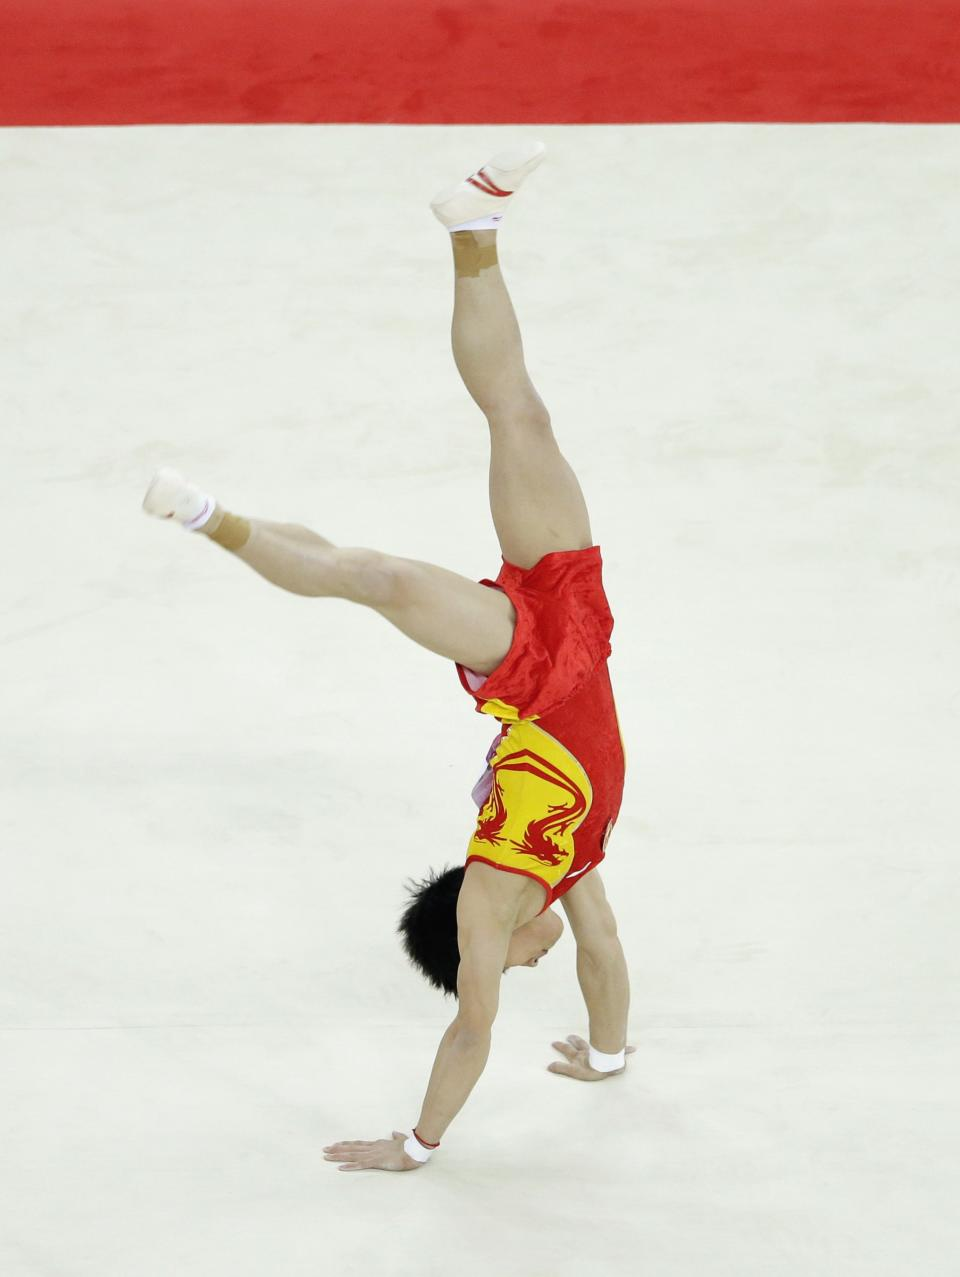 Chinese gymnast Zou Kai performs during the artistic gymnastics men's floor exercise final at the 2012 Summer Olympics, Sunday, Aug. 5, 2012, in London. (AP Photo/Gregory Bull)